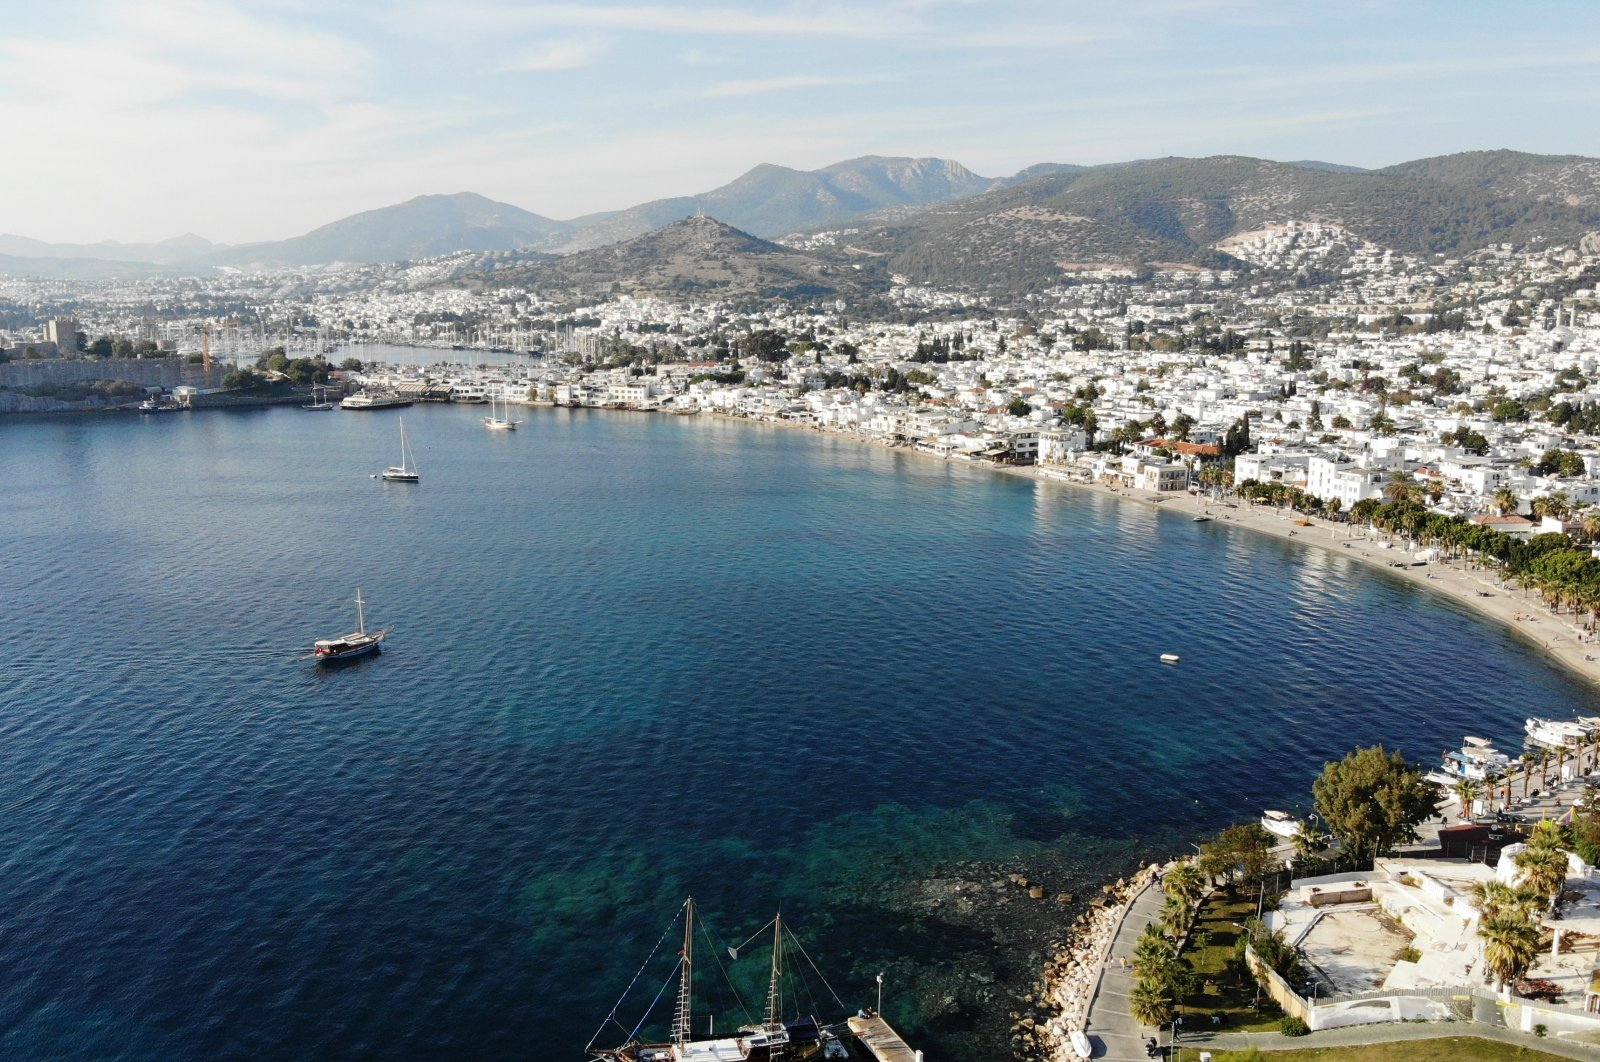 The resort city of Bodrum in the Aegean province of Muğla, Turkey, Nov. 22, 2020. (IHA Photo)